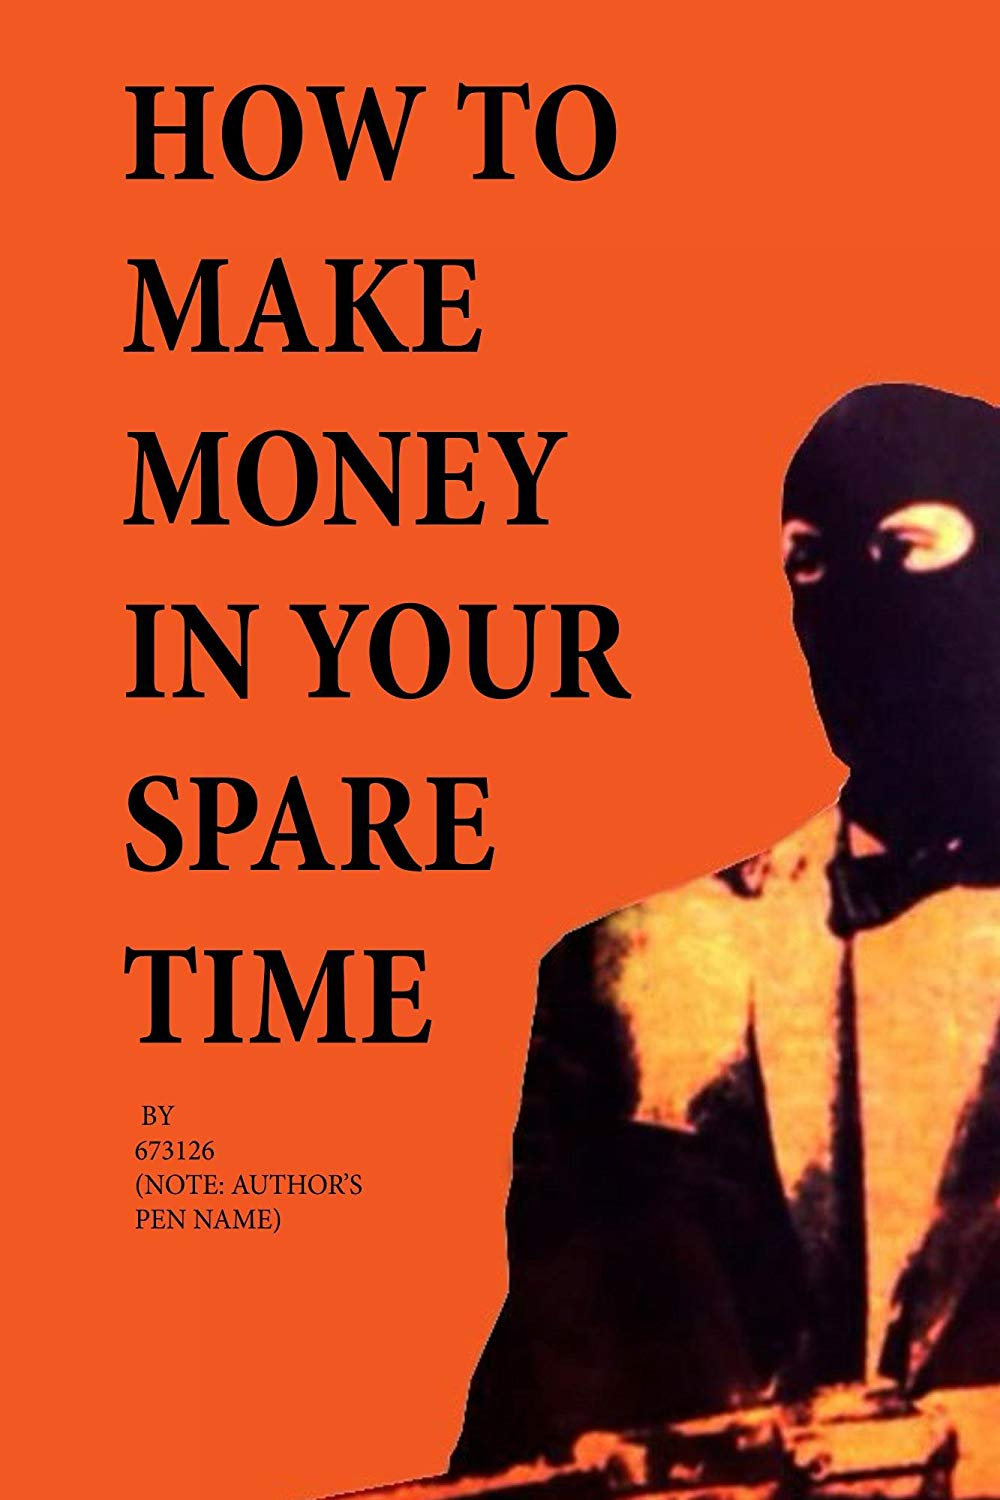 'How to Make Money in Your Spare Time' by 673126 & J M.R. Rice